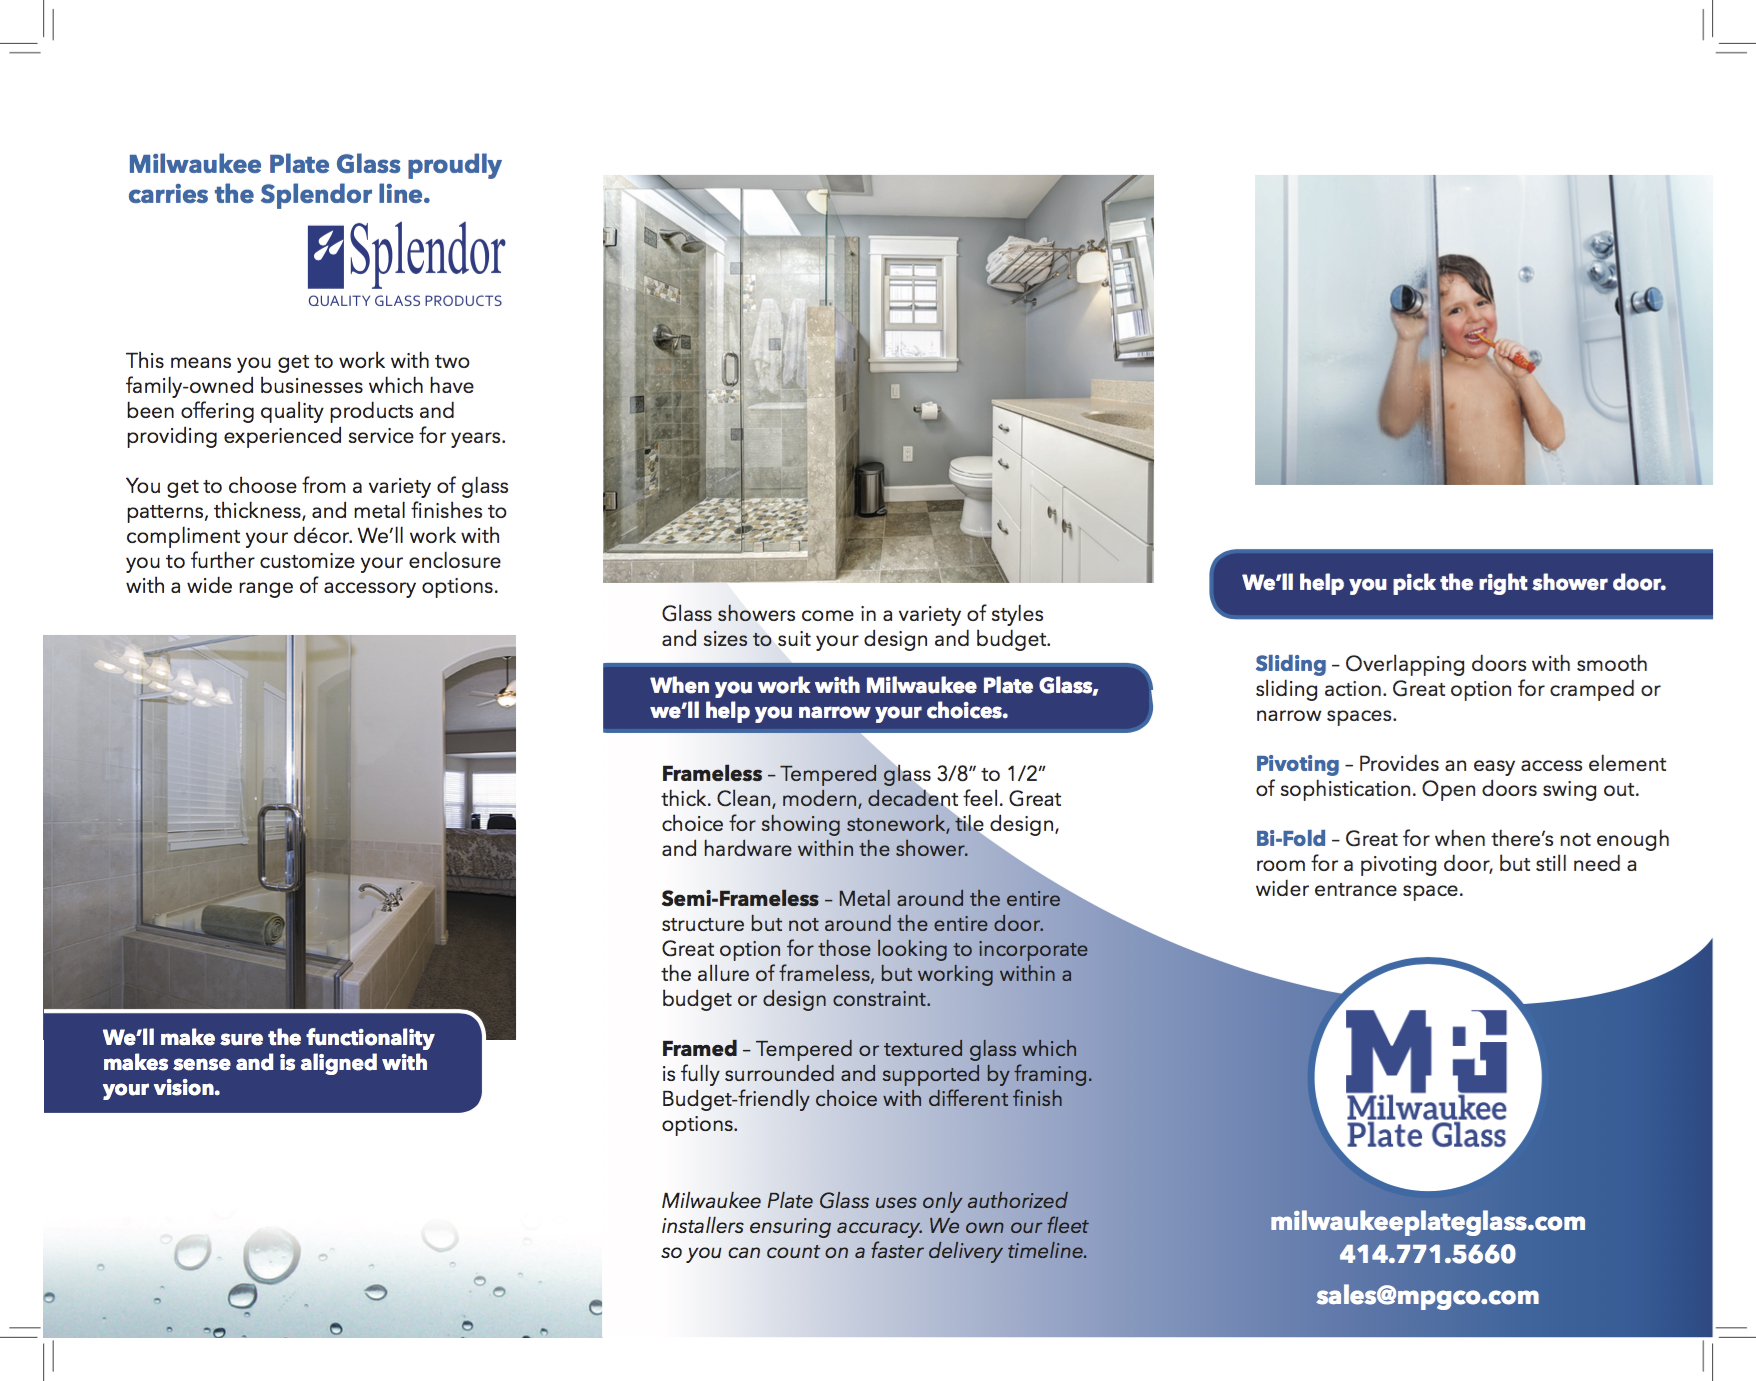 Milwaukee Plate Glass Shower Door brochure Branding and Marketing